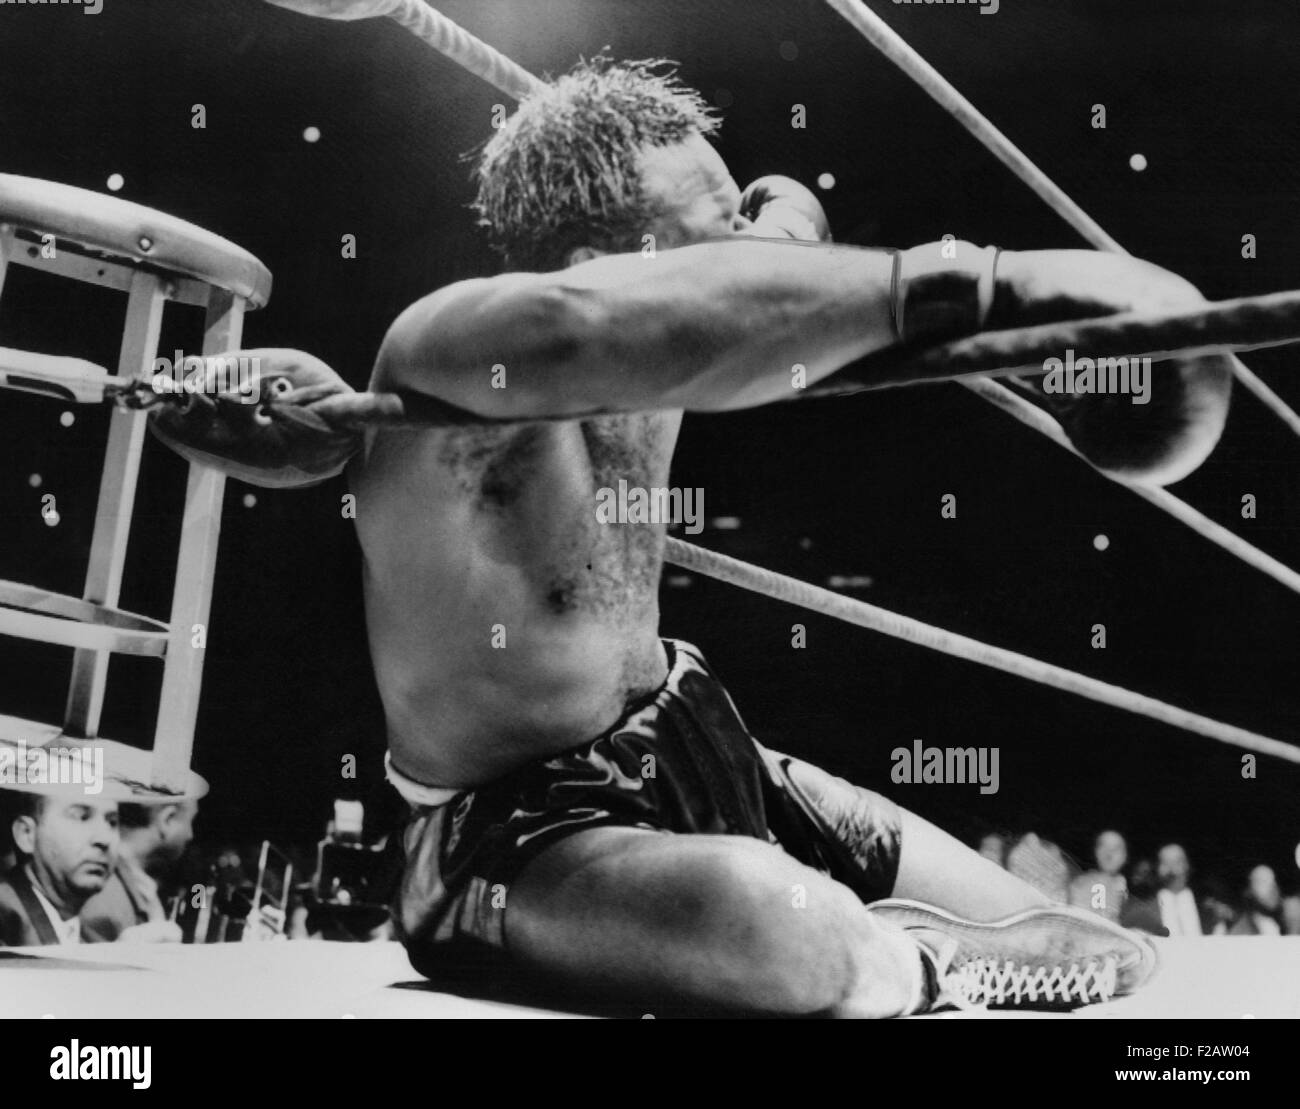 Archie Moore knocked out by Heavyweight Champion Rocky Marciano, Sept. 21, 1955. It was the 9th round of their title - Stock Image